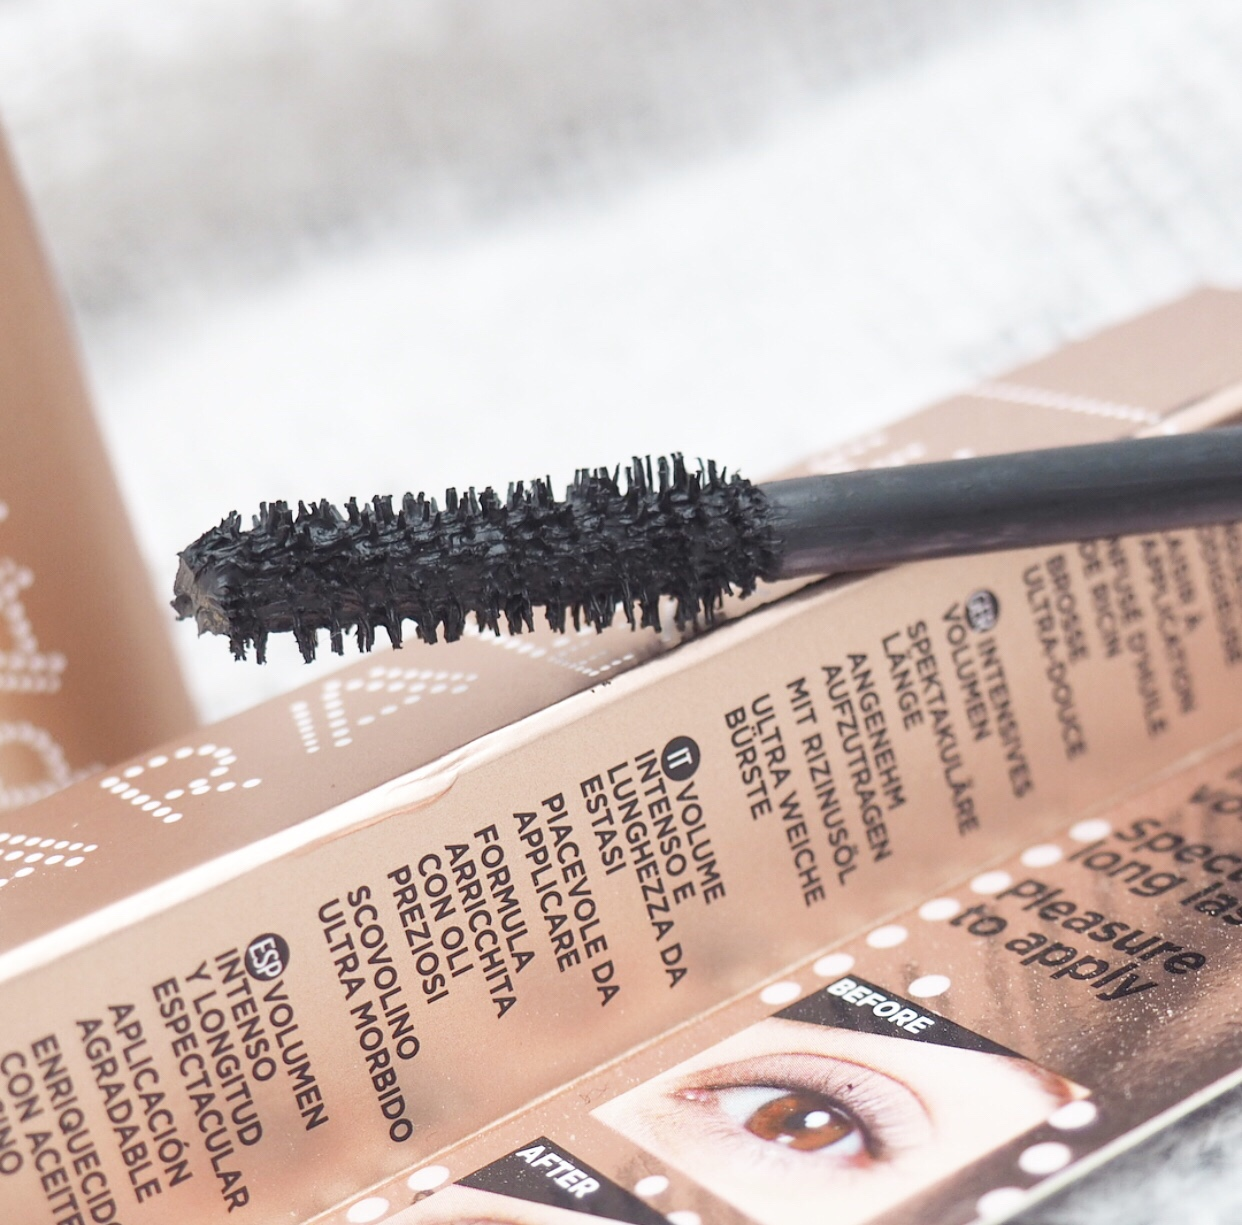 L'Oréal Paradise Extatic Mascara Review